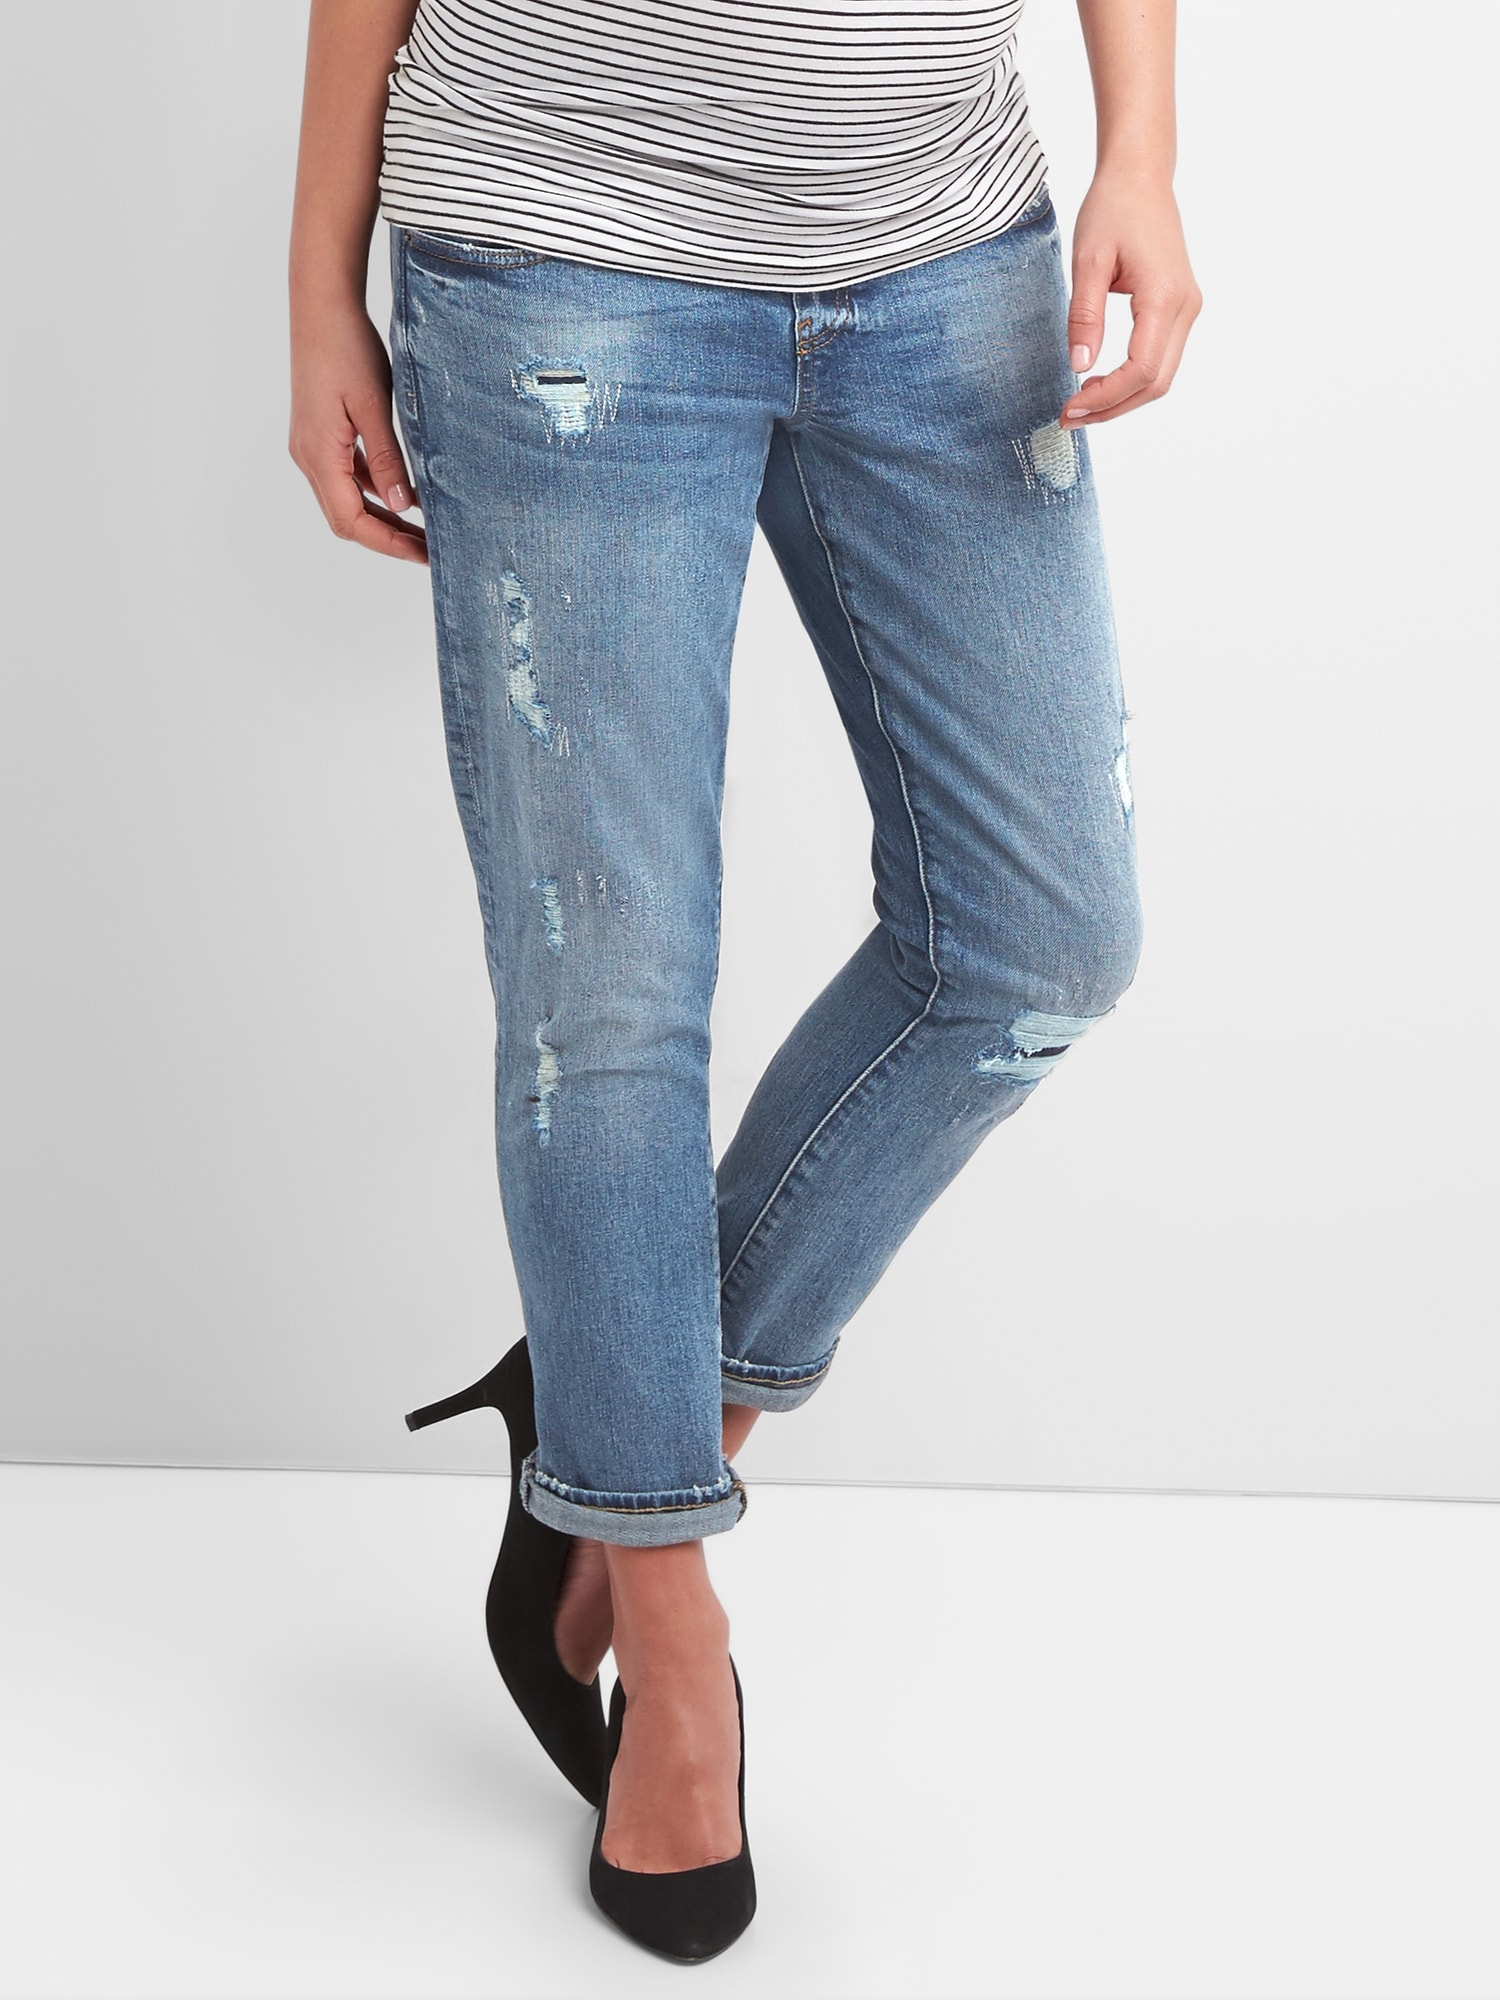 6a497786ee495 Maternity Demi Panel Repaired Girlfriend Jeans | Gap